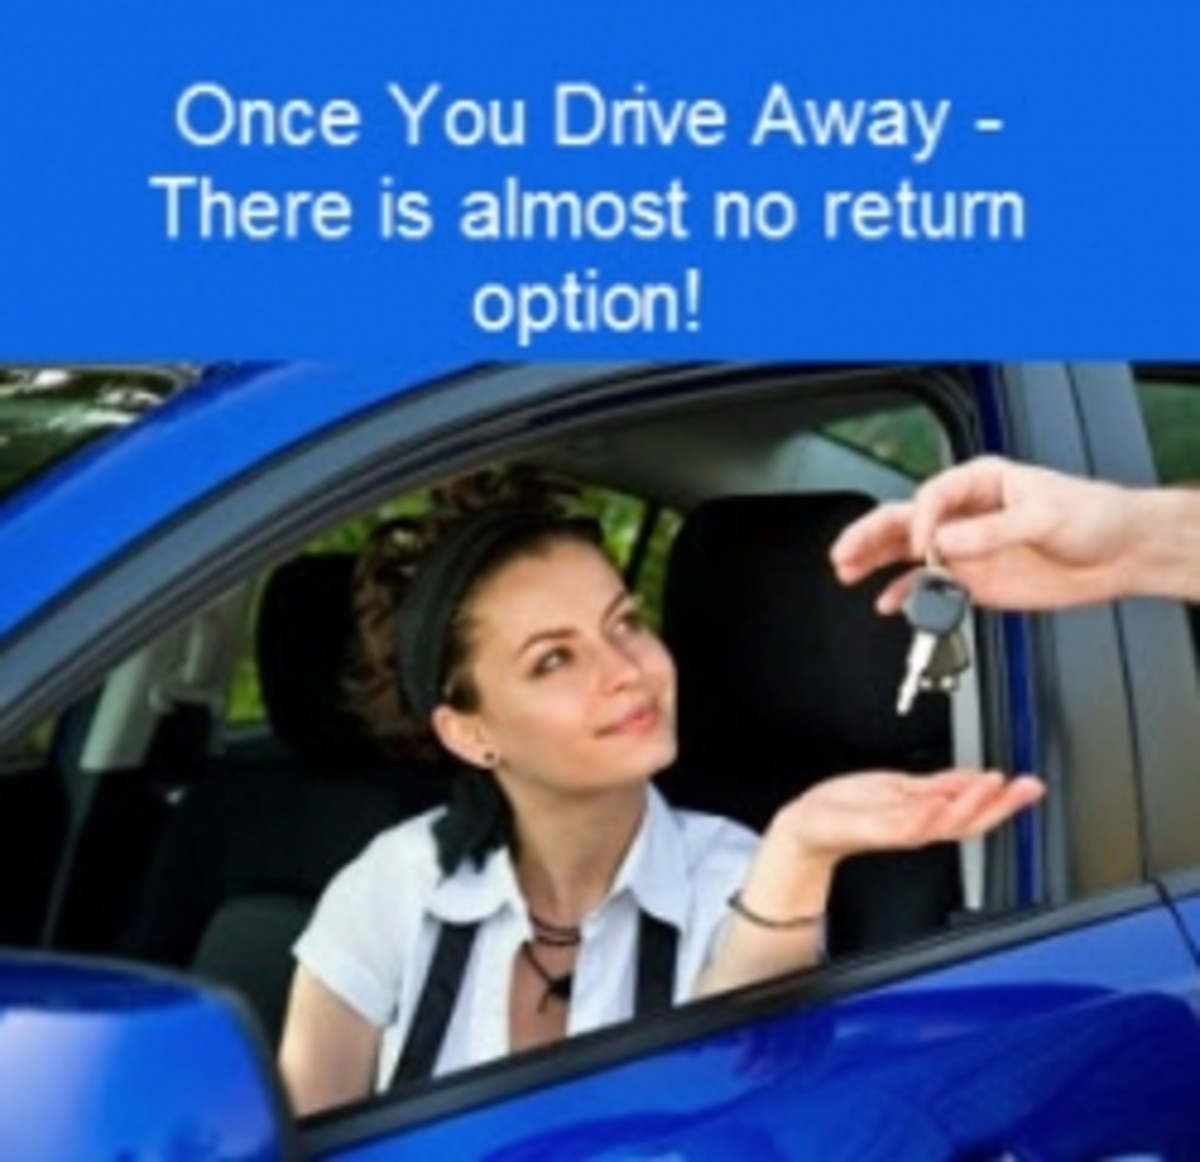 Can you return a car?